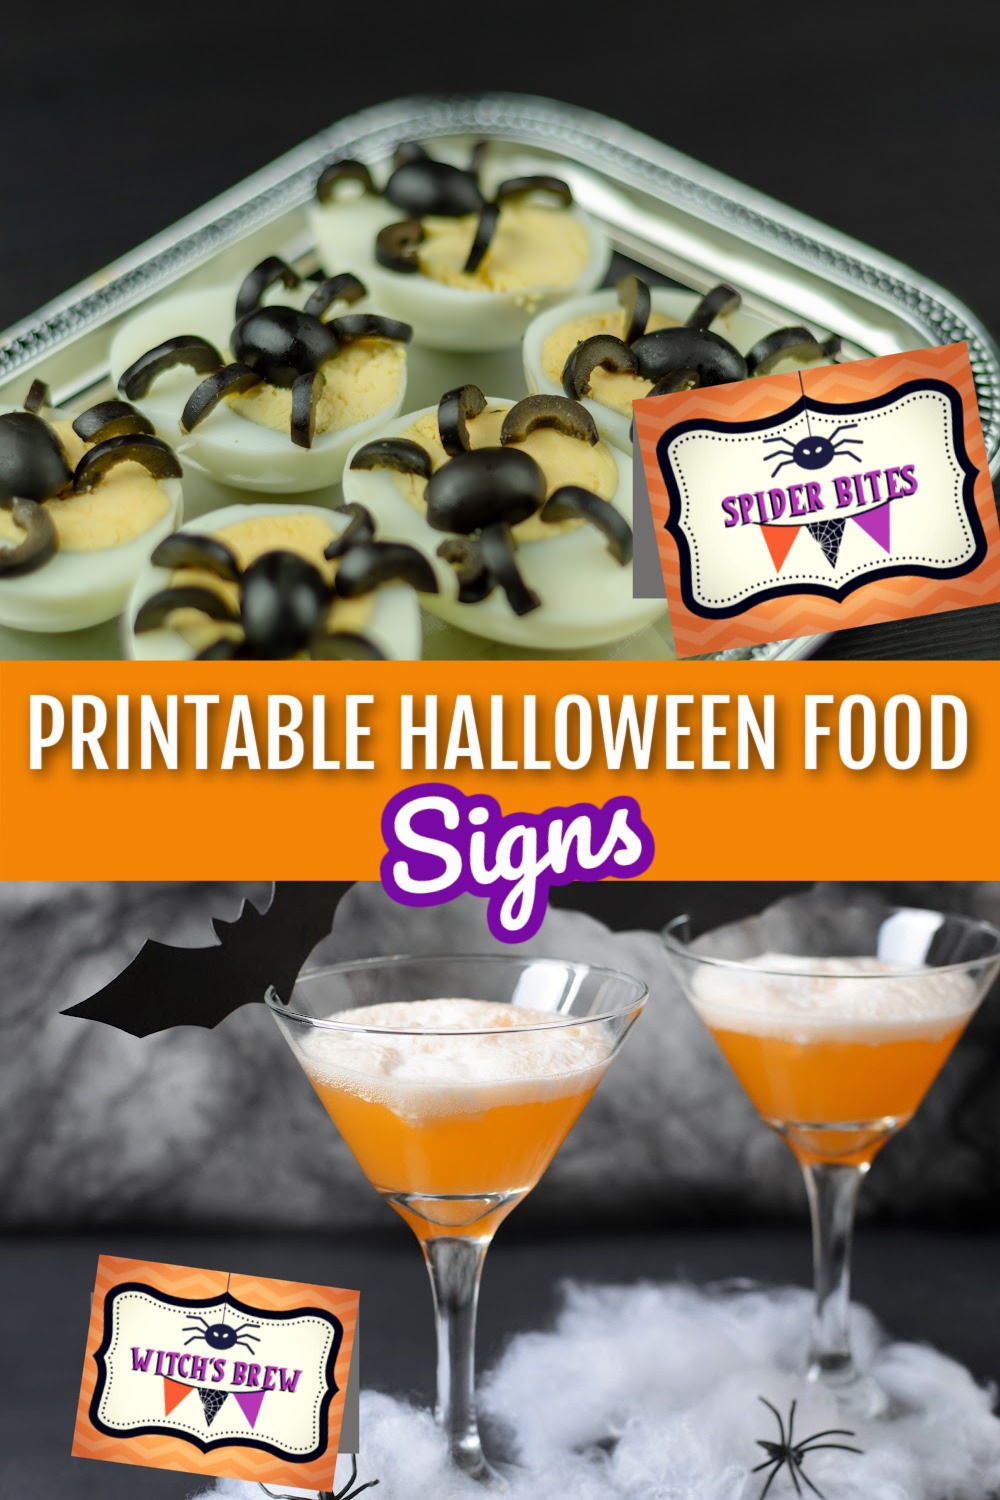 Spider deviled eggs with Spider Bites Halloween food tent card and Witches Brew food sign with two orange martinis.